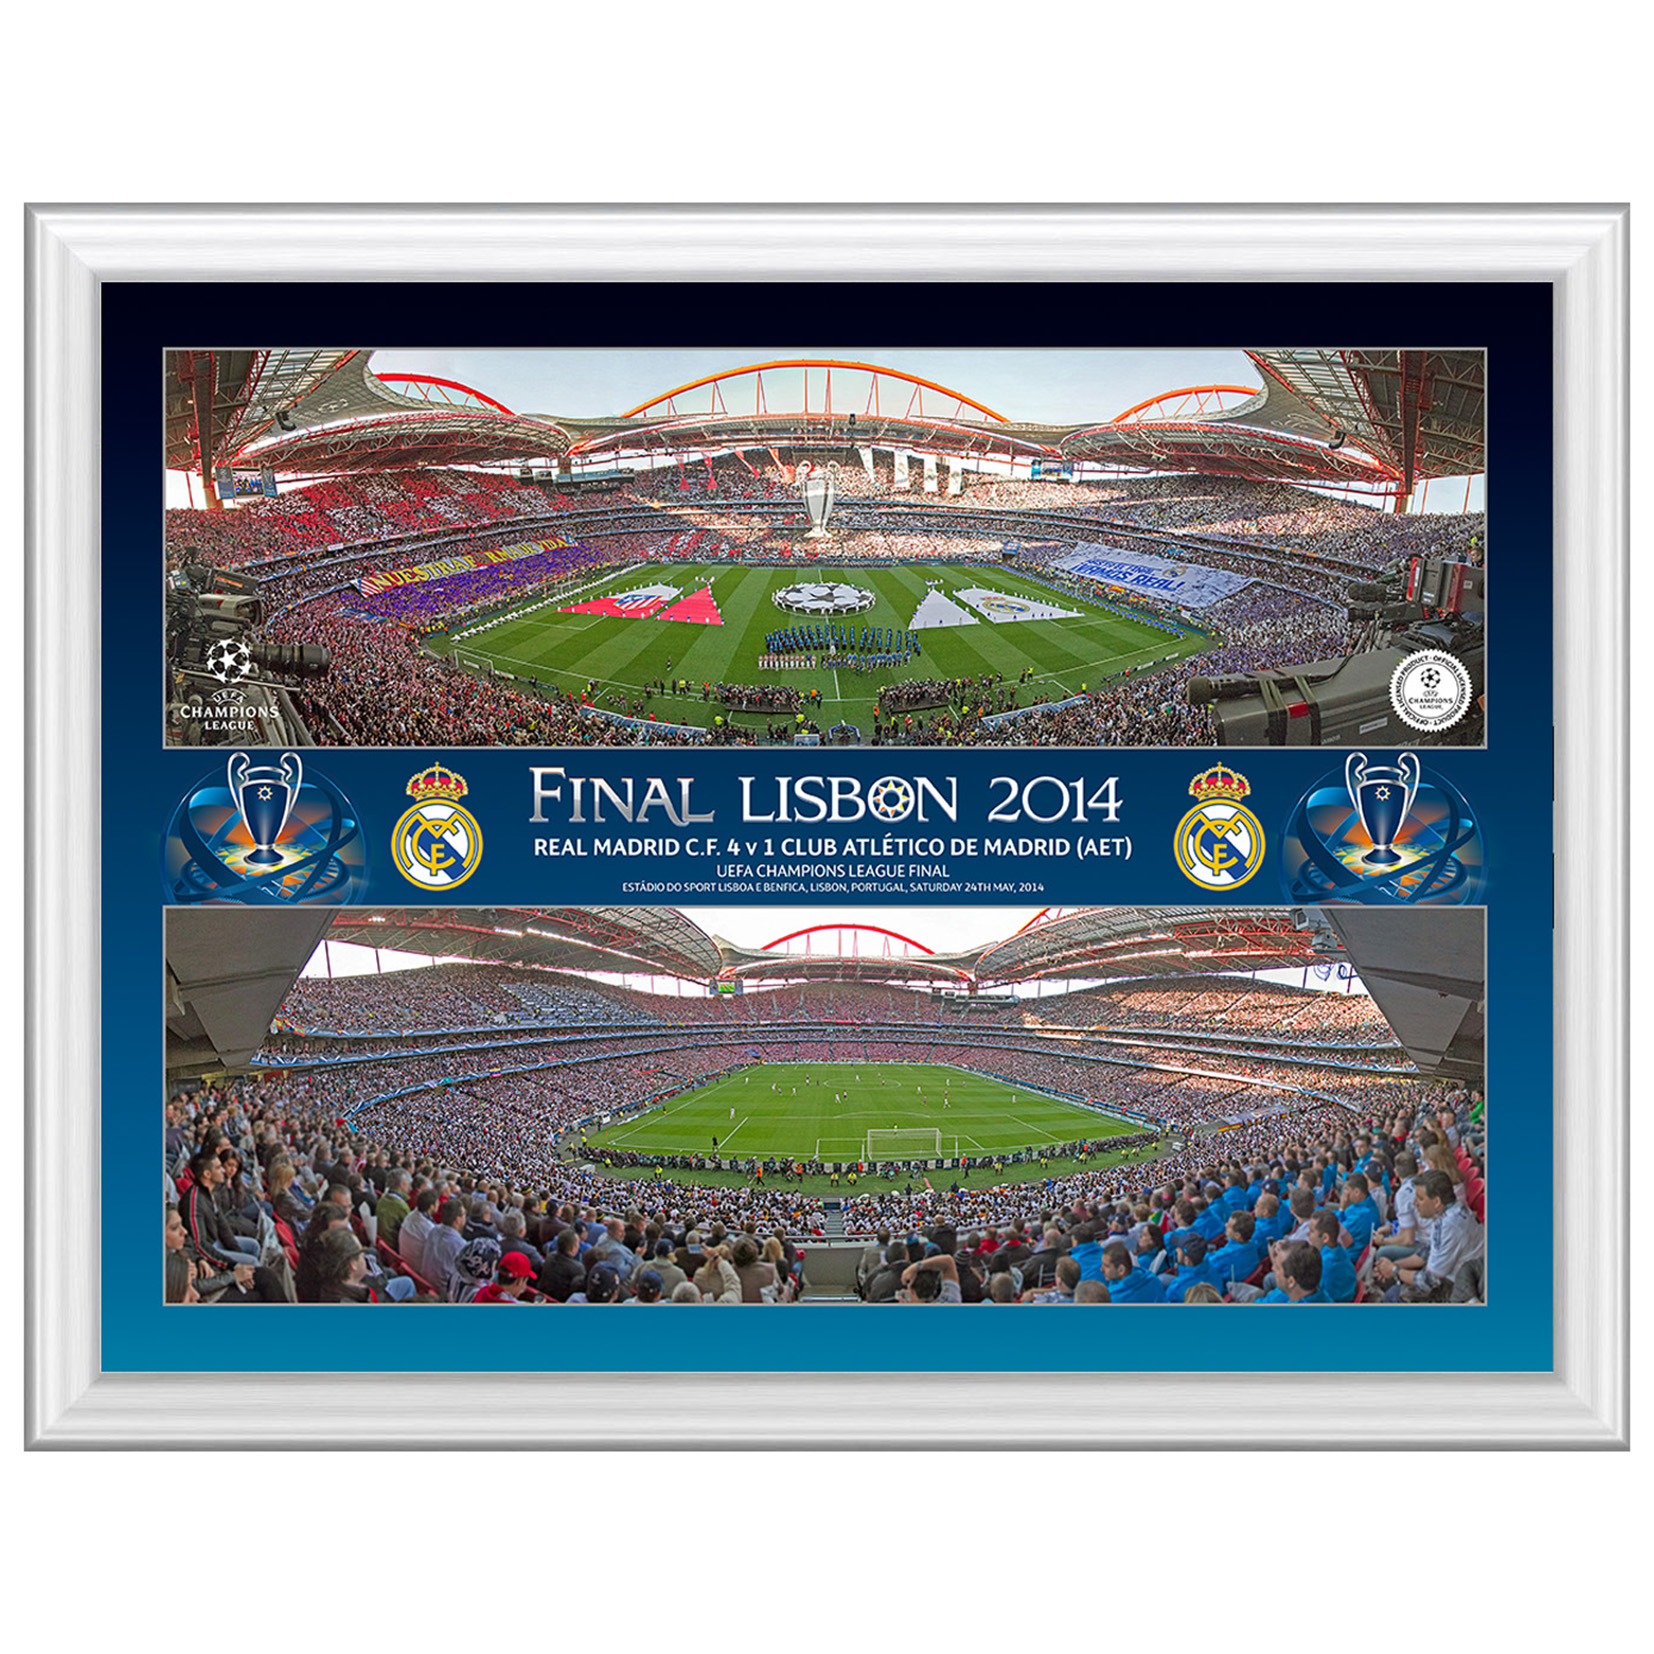 Real Madrid Champions League Final 2014 Panoramic Montage Print - 16 x 12 Inch